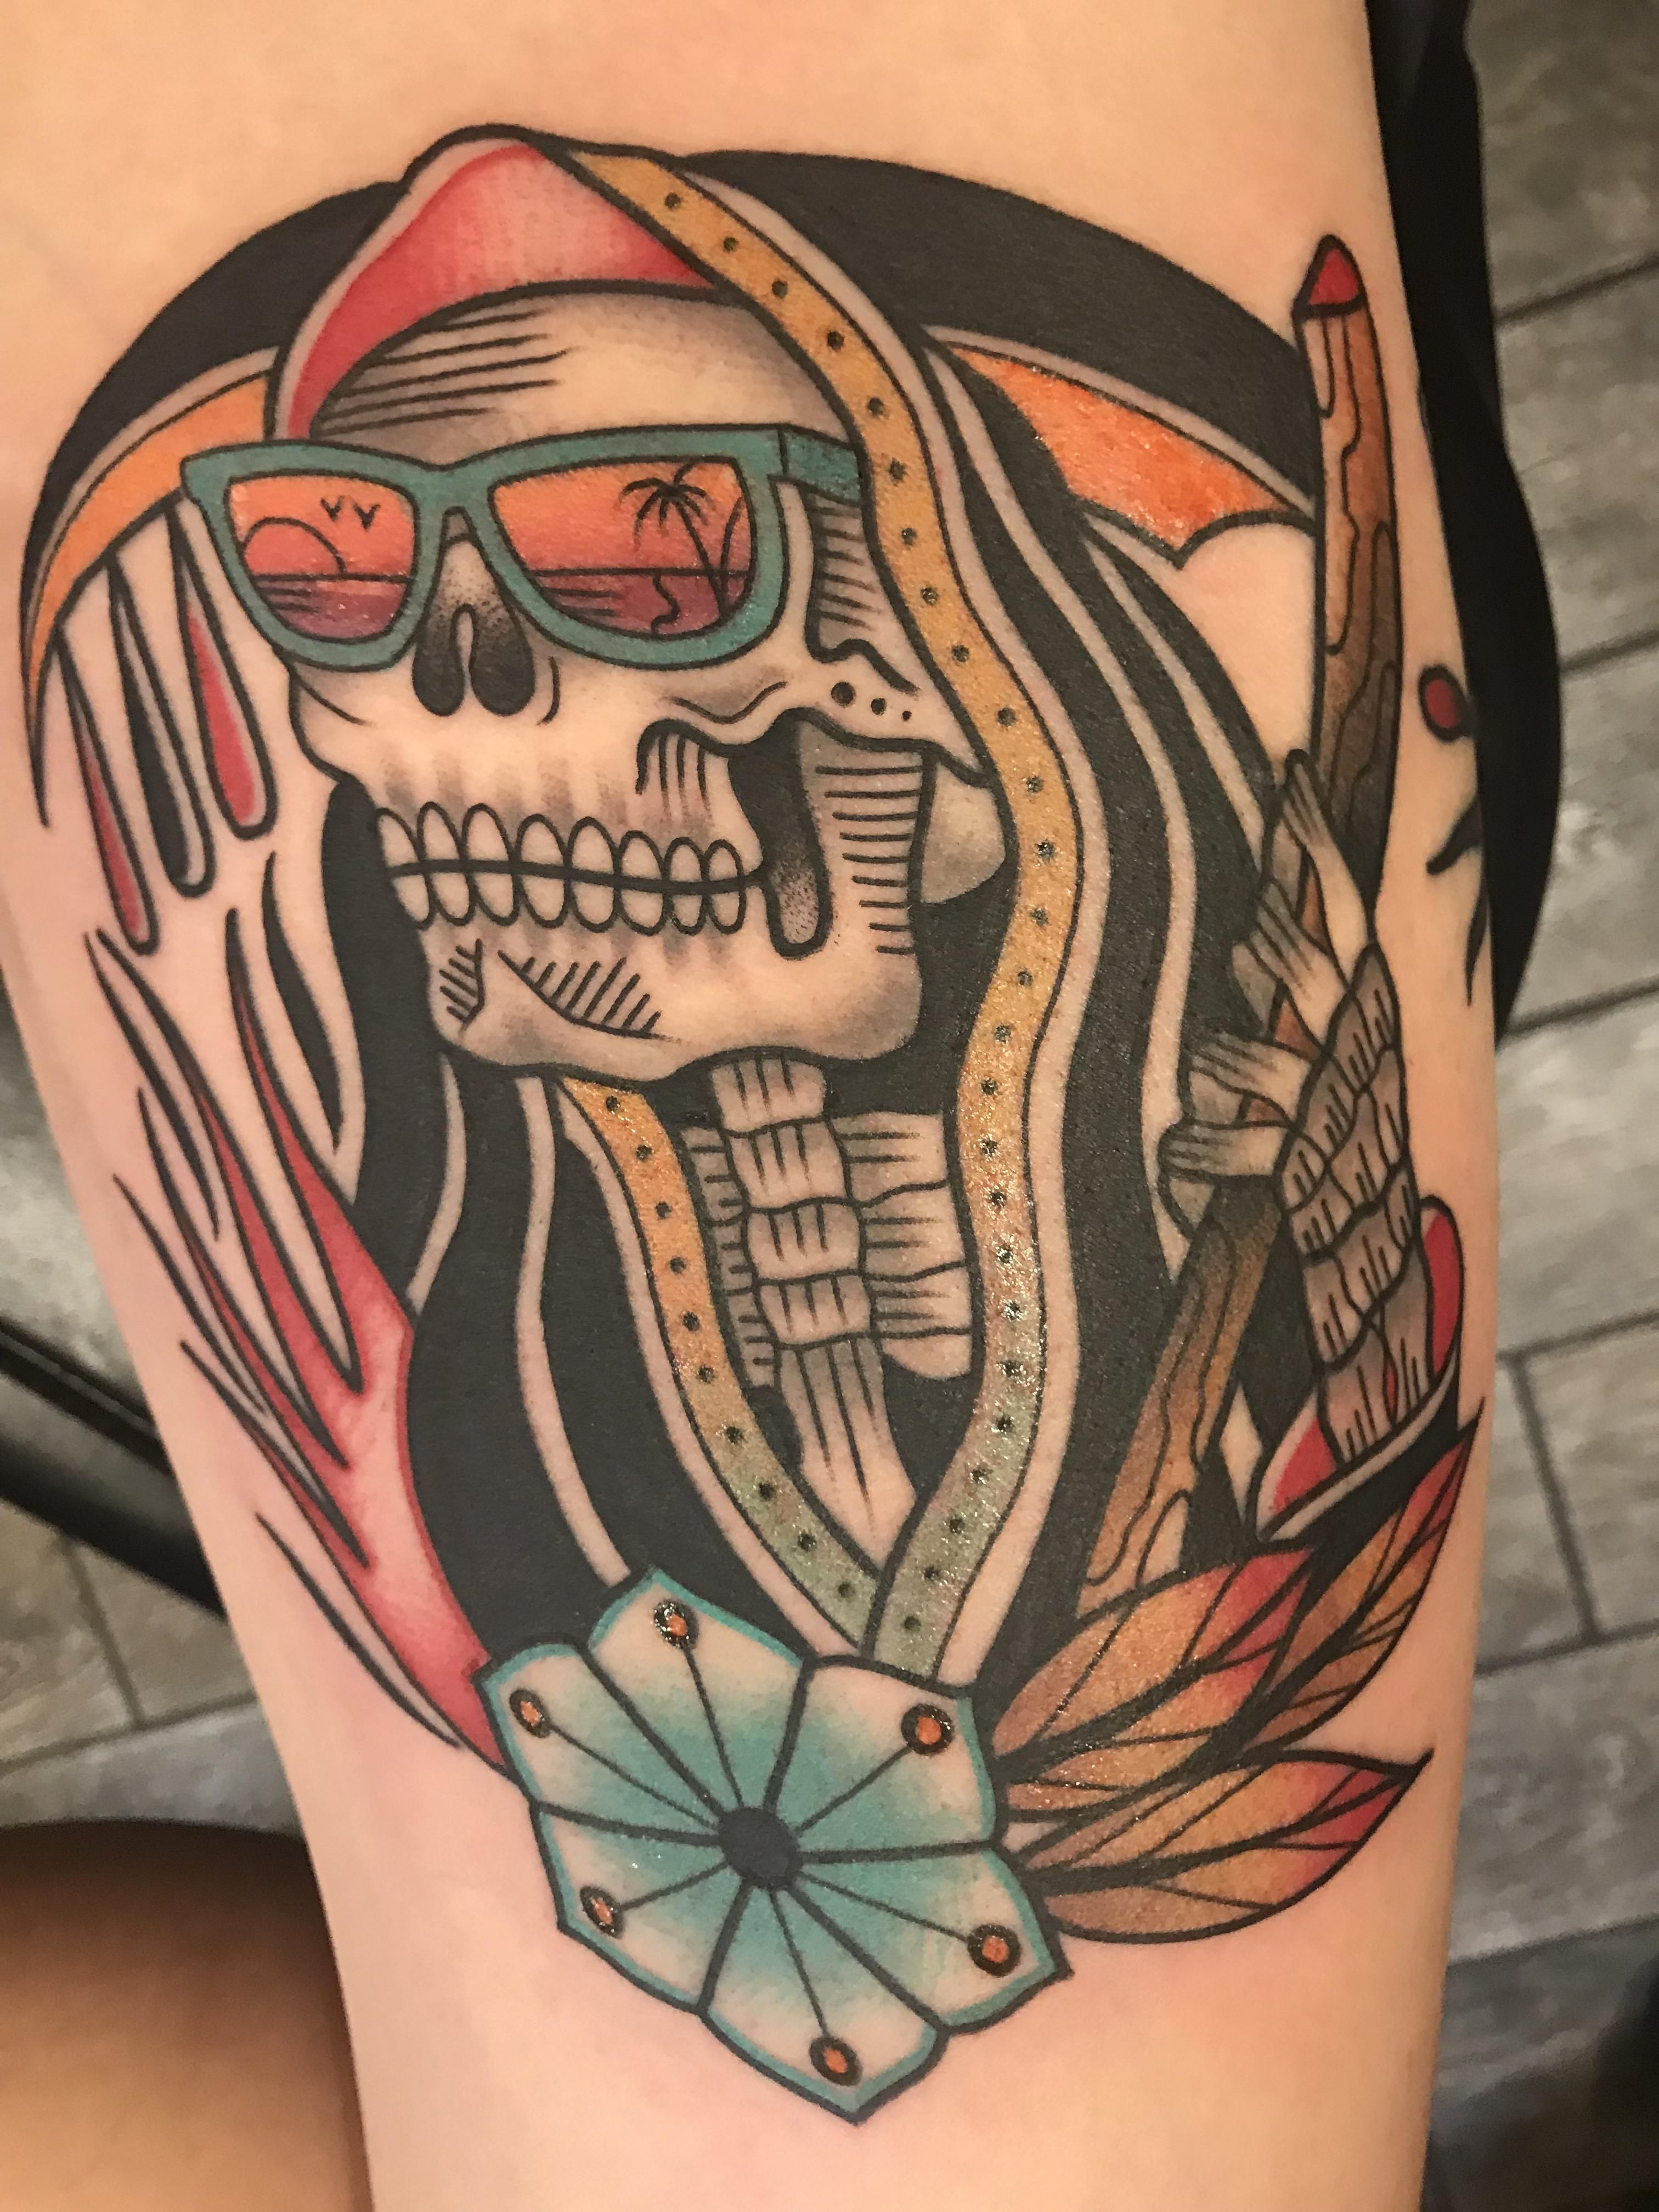 California reapin - Zack Taylor at evermore tattoo in Los Angeles ...